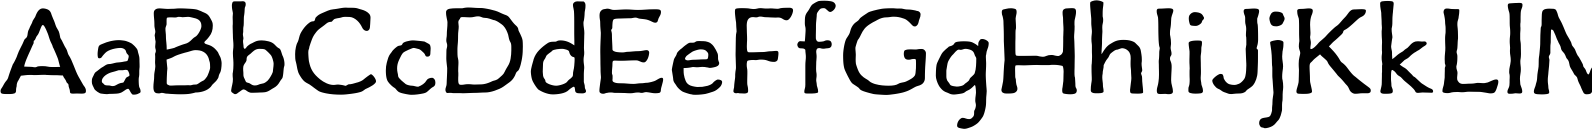 Charcuterie Flared Font